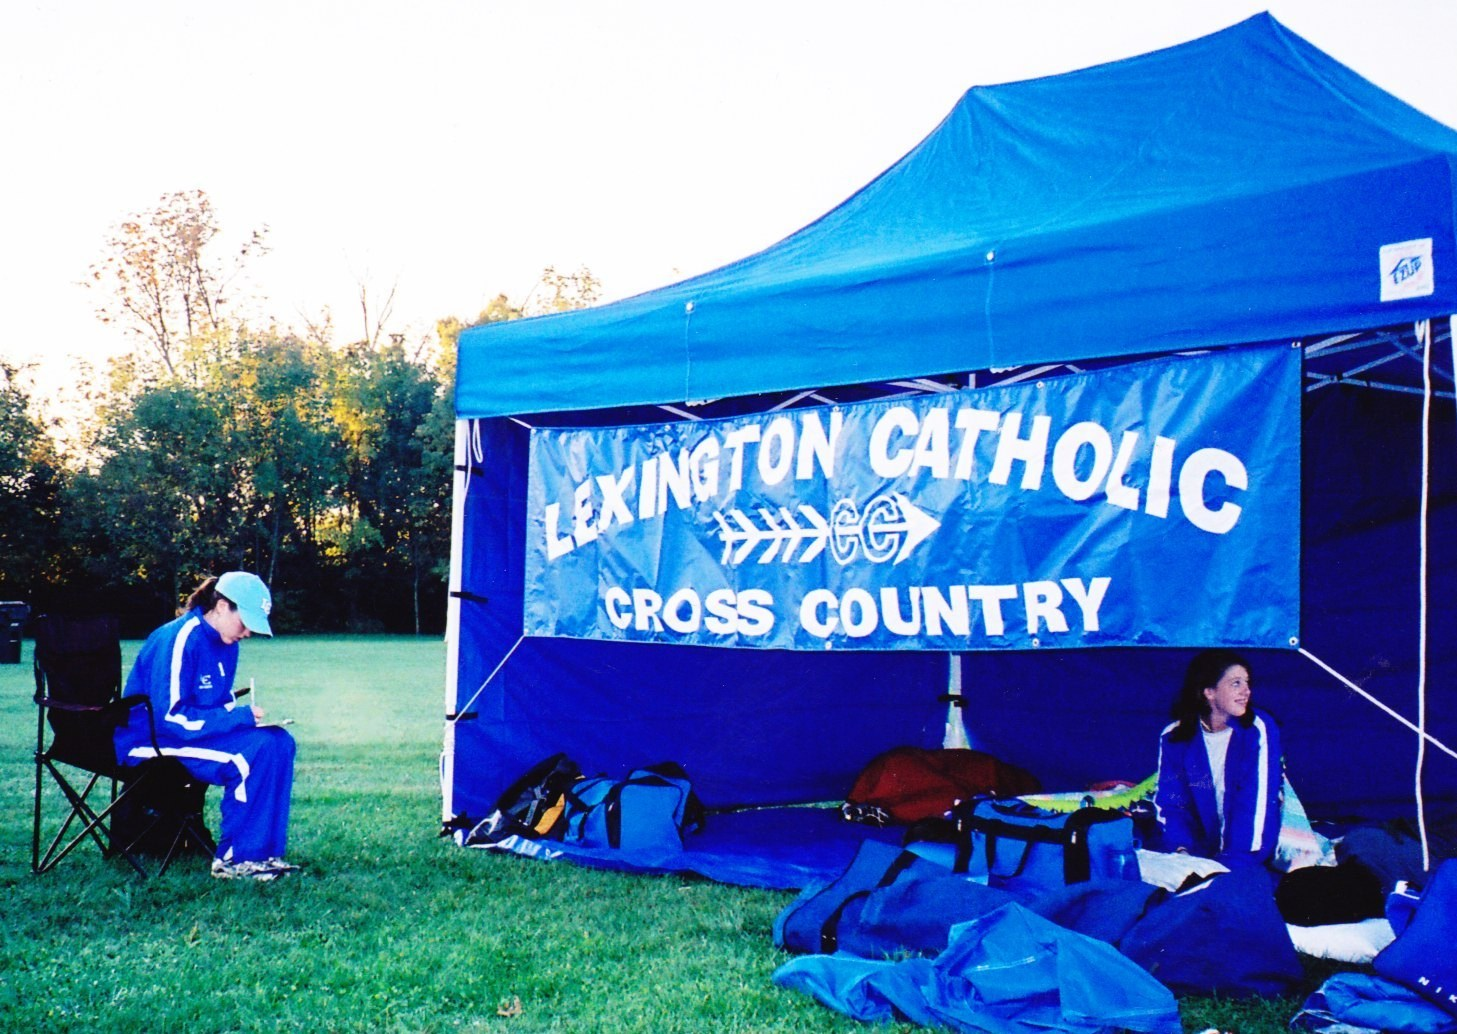 2005 Coach Danielle Courts and Katheen Gallagher at Region & History in Photos u2013 Cross Country u2013 Lexington Catholic High School